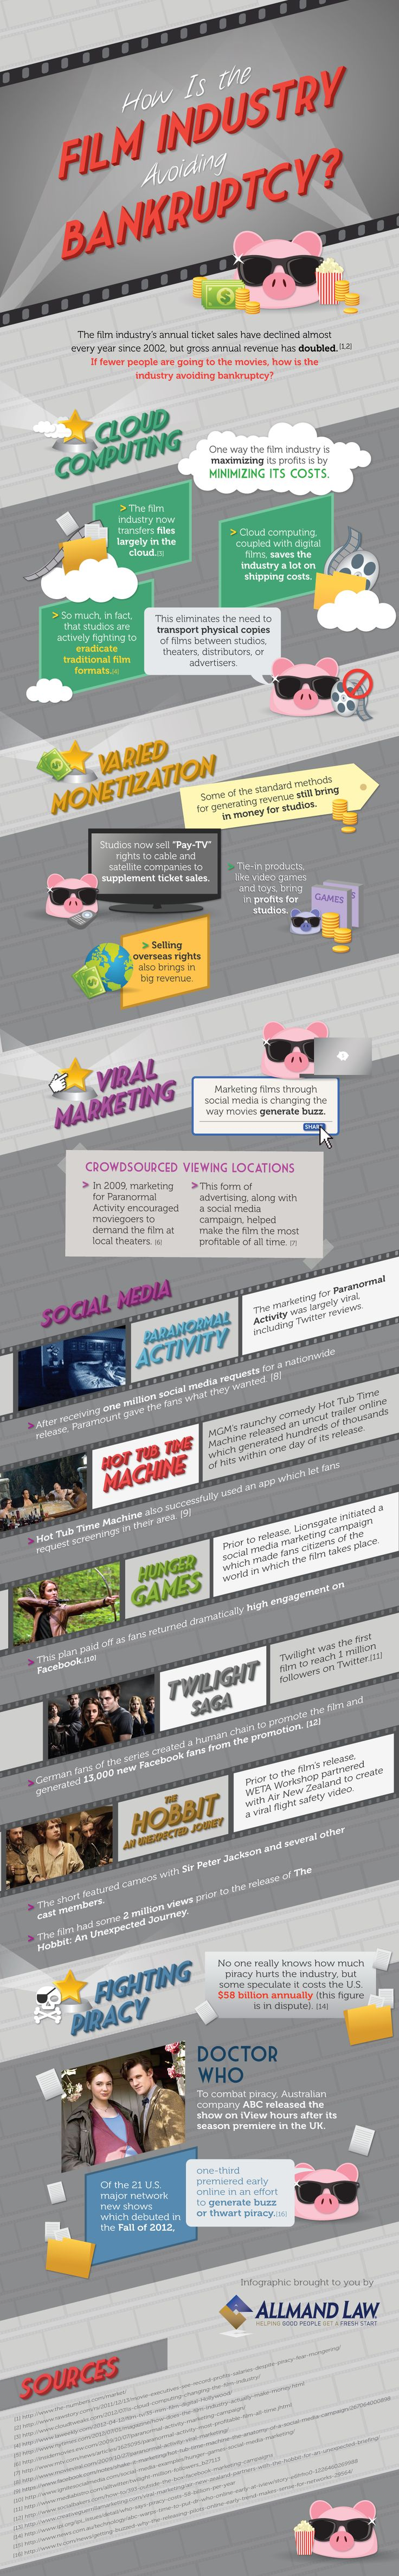 An infographic reveals how the film industry is using social media and viral marketing to compensate for declining ticket sales.